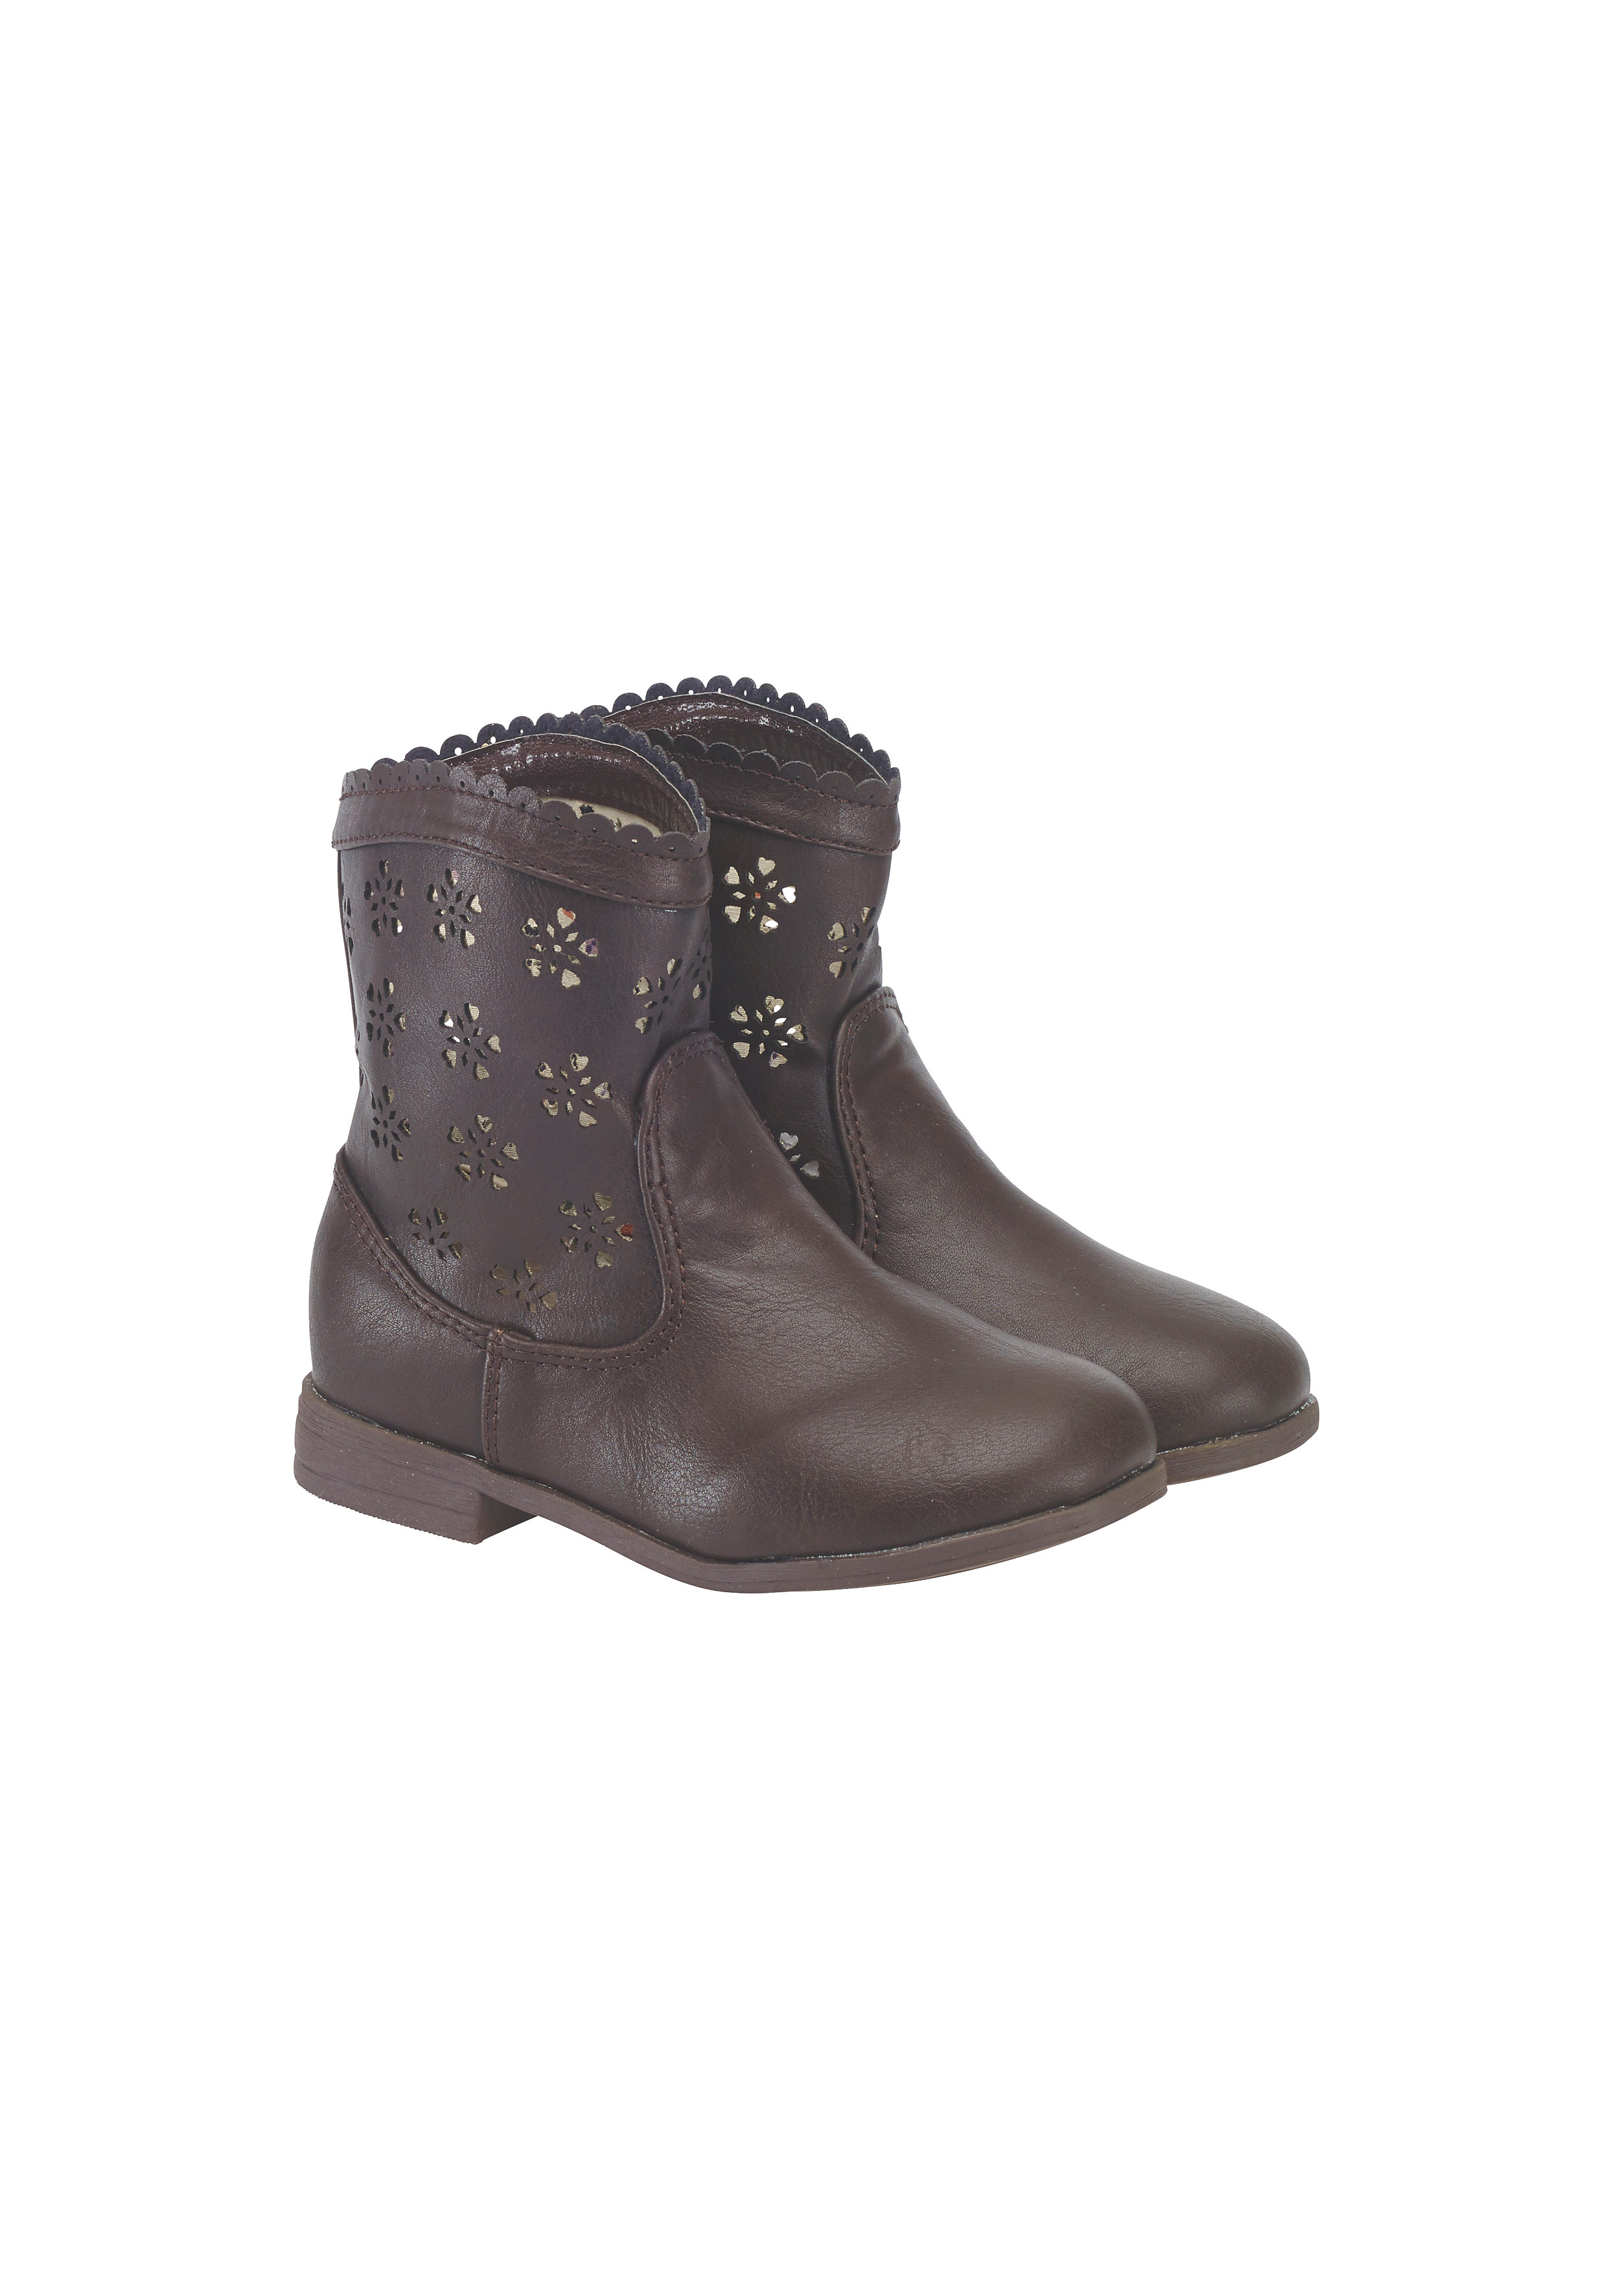 Mothercare | Girls Boots Cut Out Design - Brown